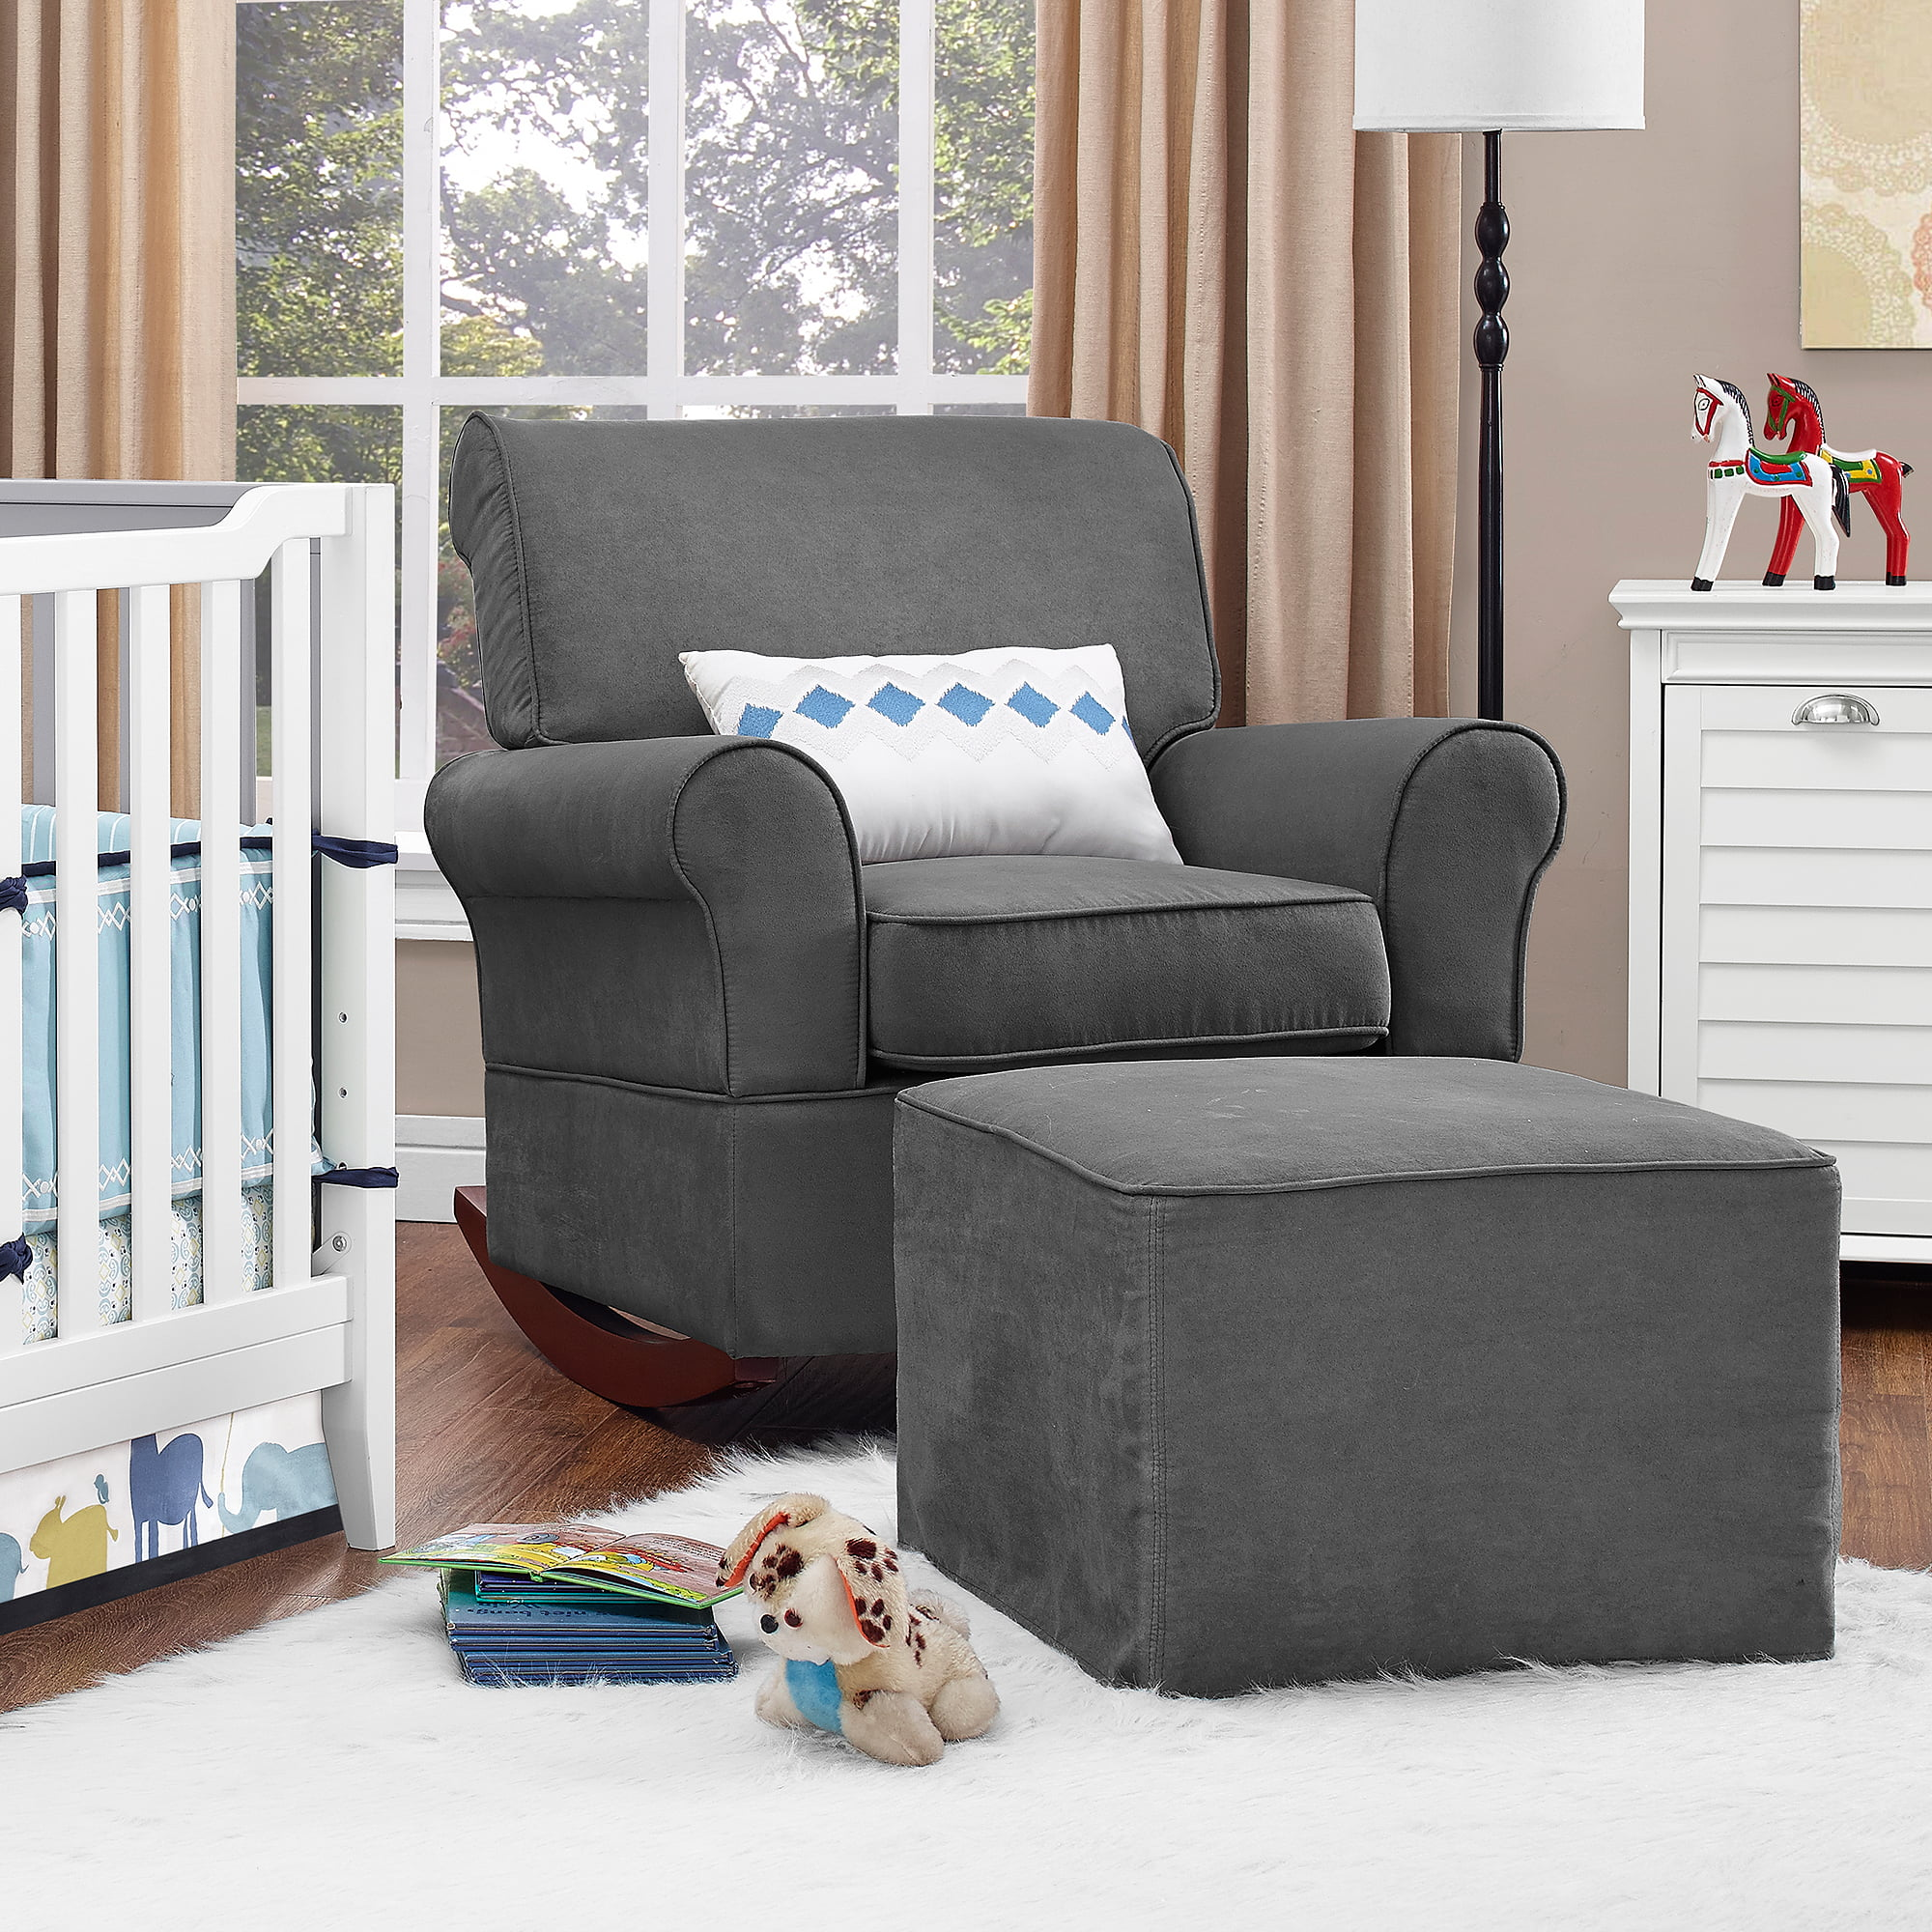 Baby Nursery Chairs Details About New Baby Nursery Rocking Chair Upholstered Grey Furniture